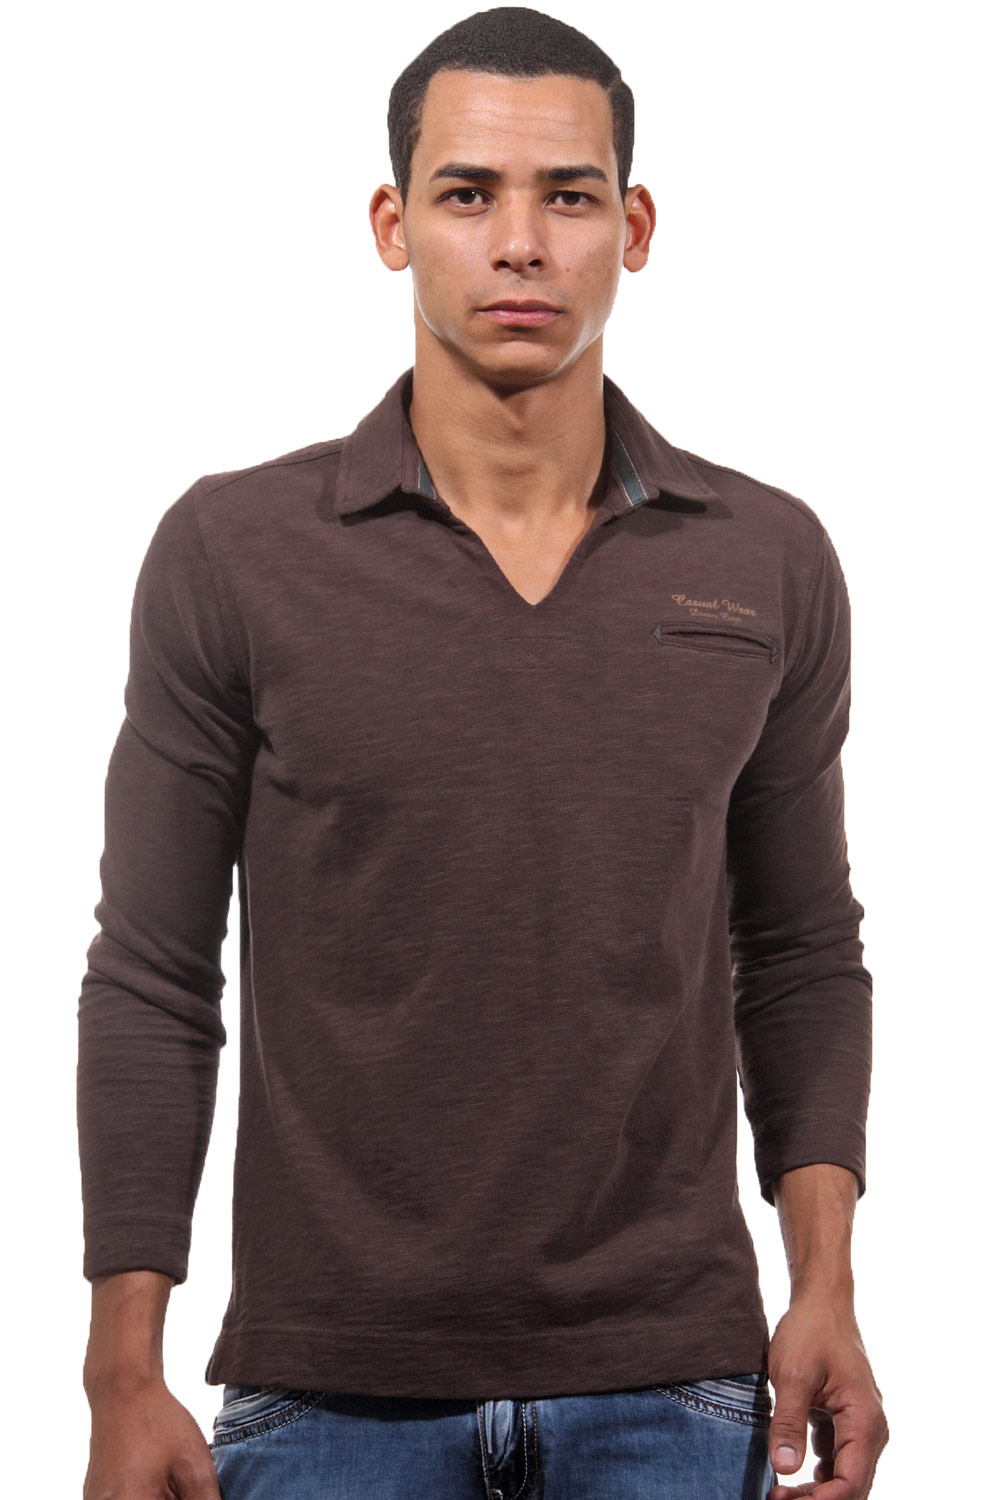 XINT polo long sleeve top at oboy.com